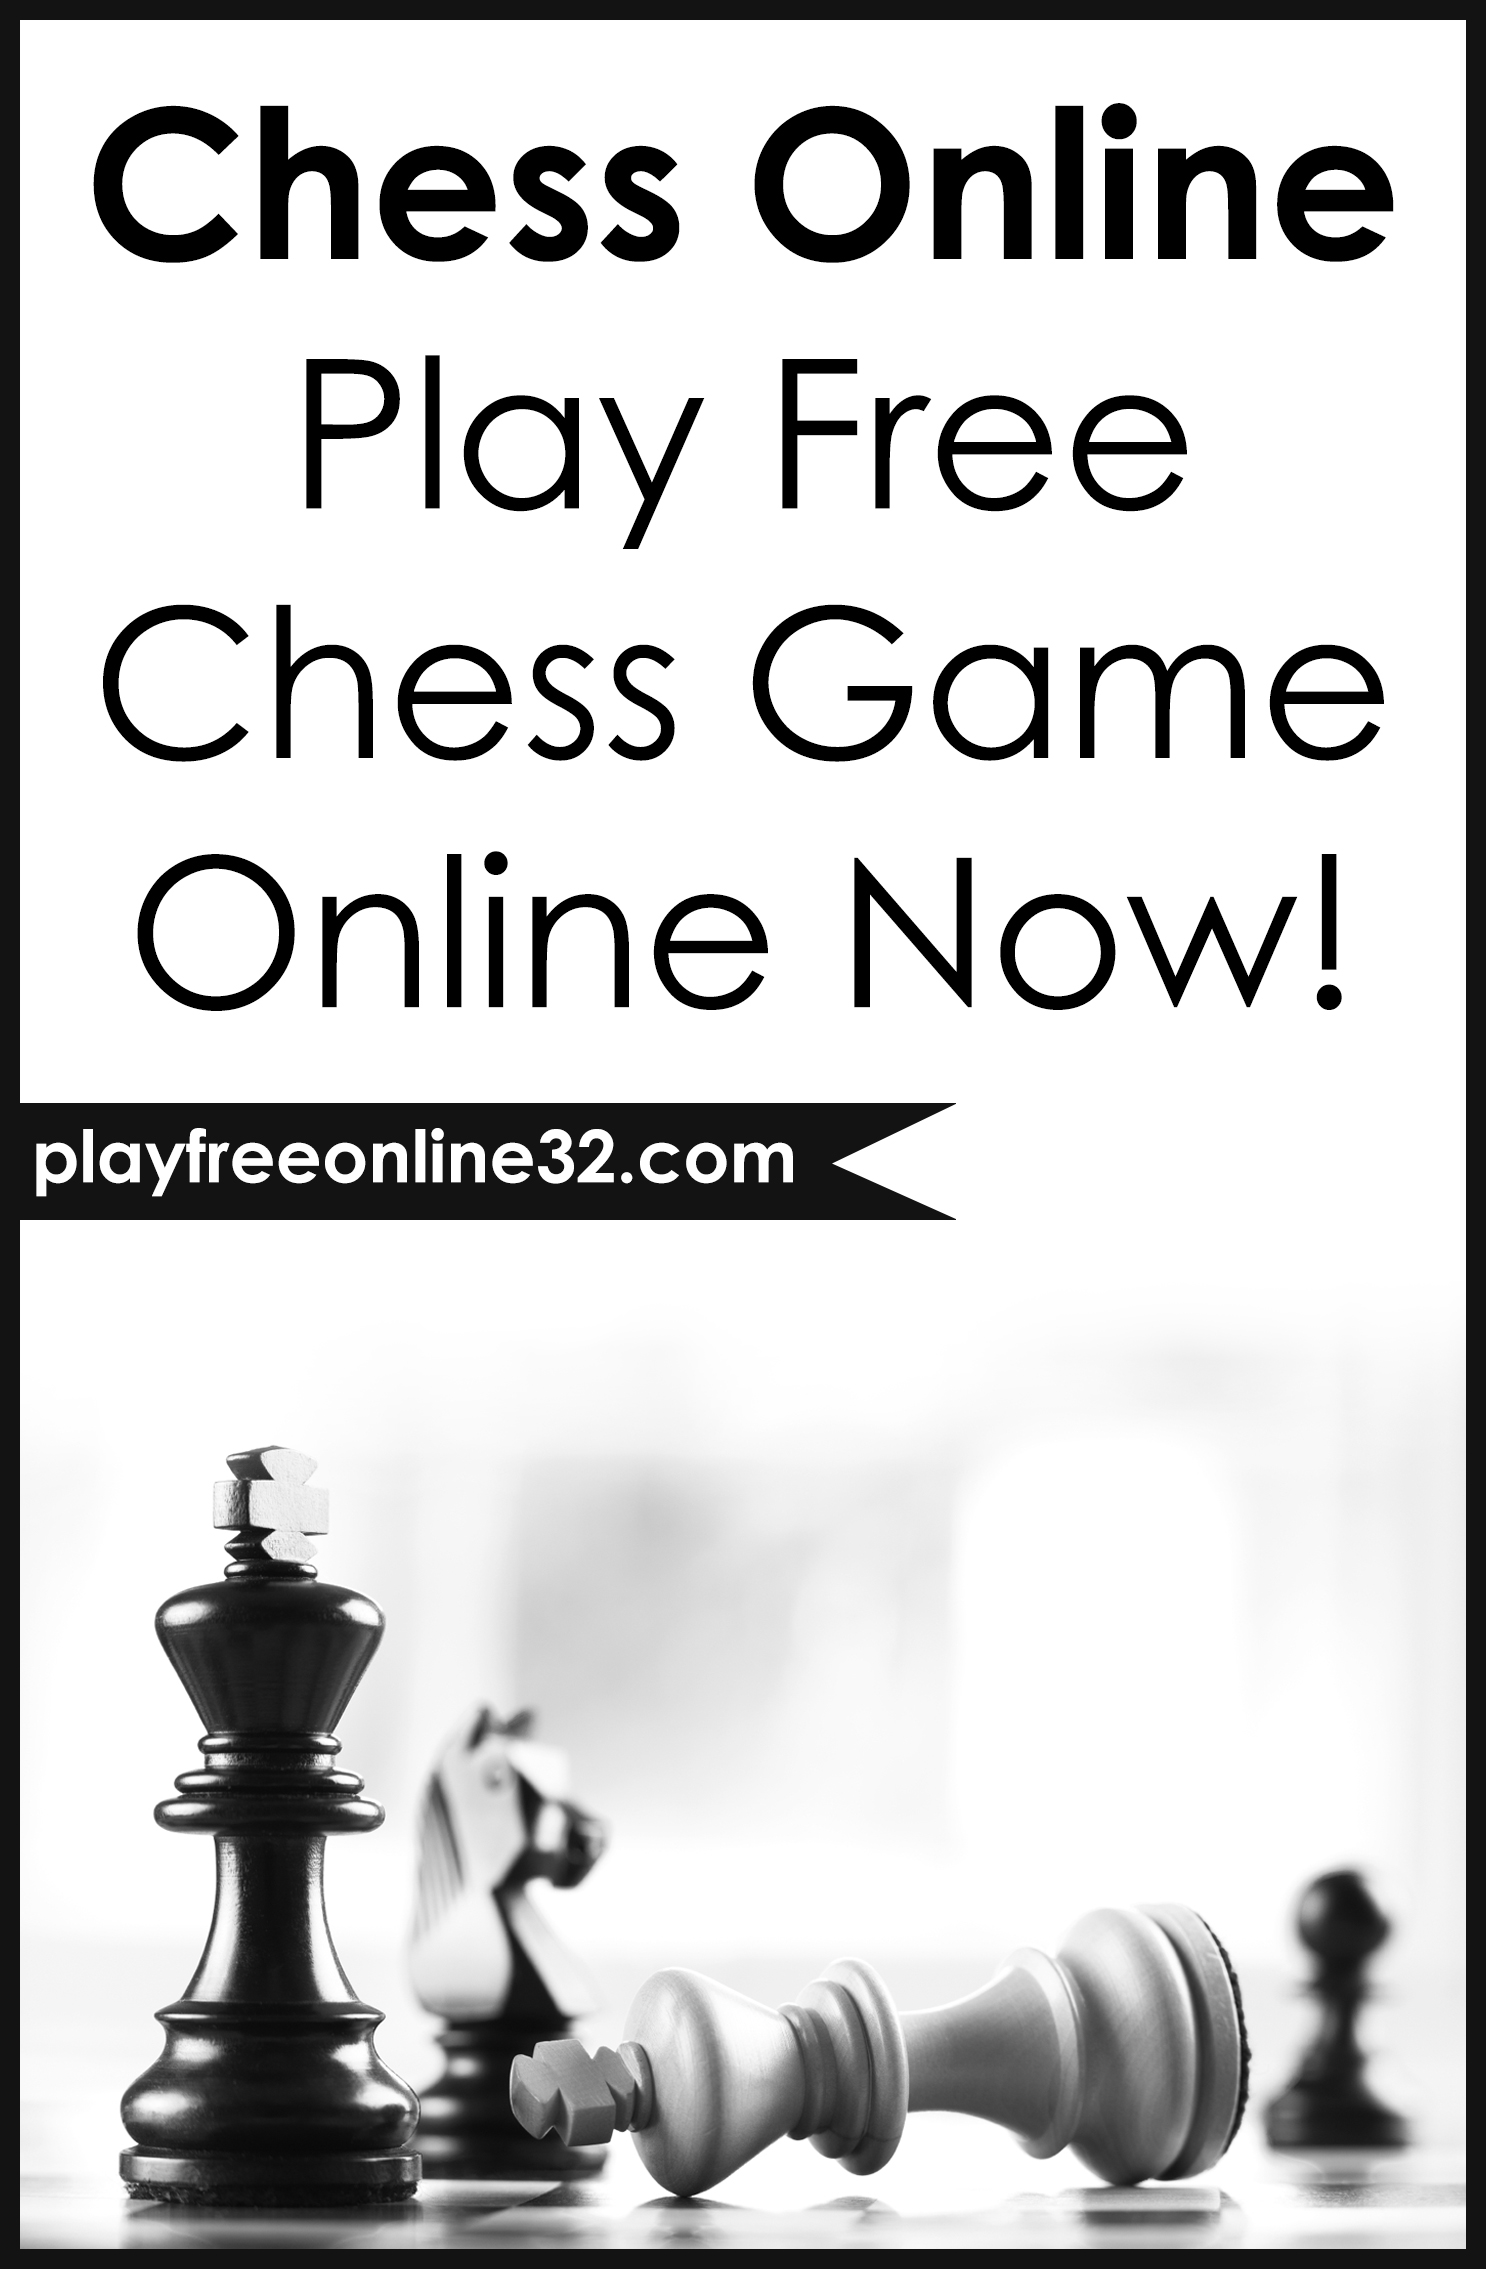 Chess Online • Play Free Chess Game Online Now!